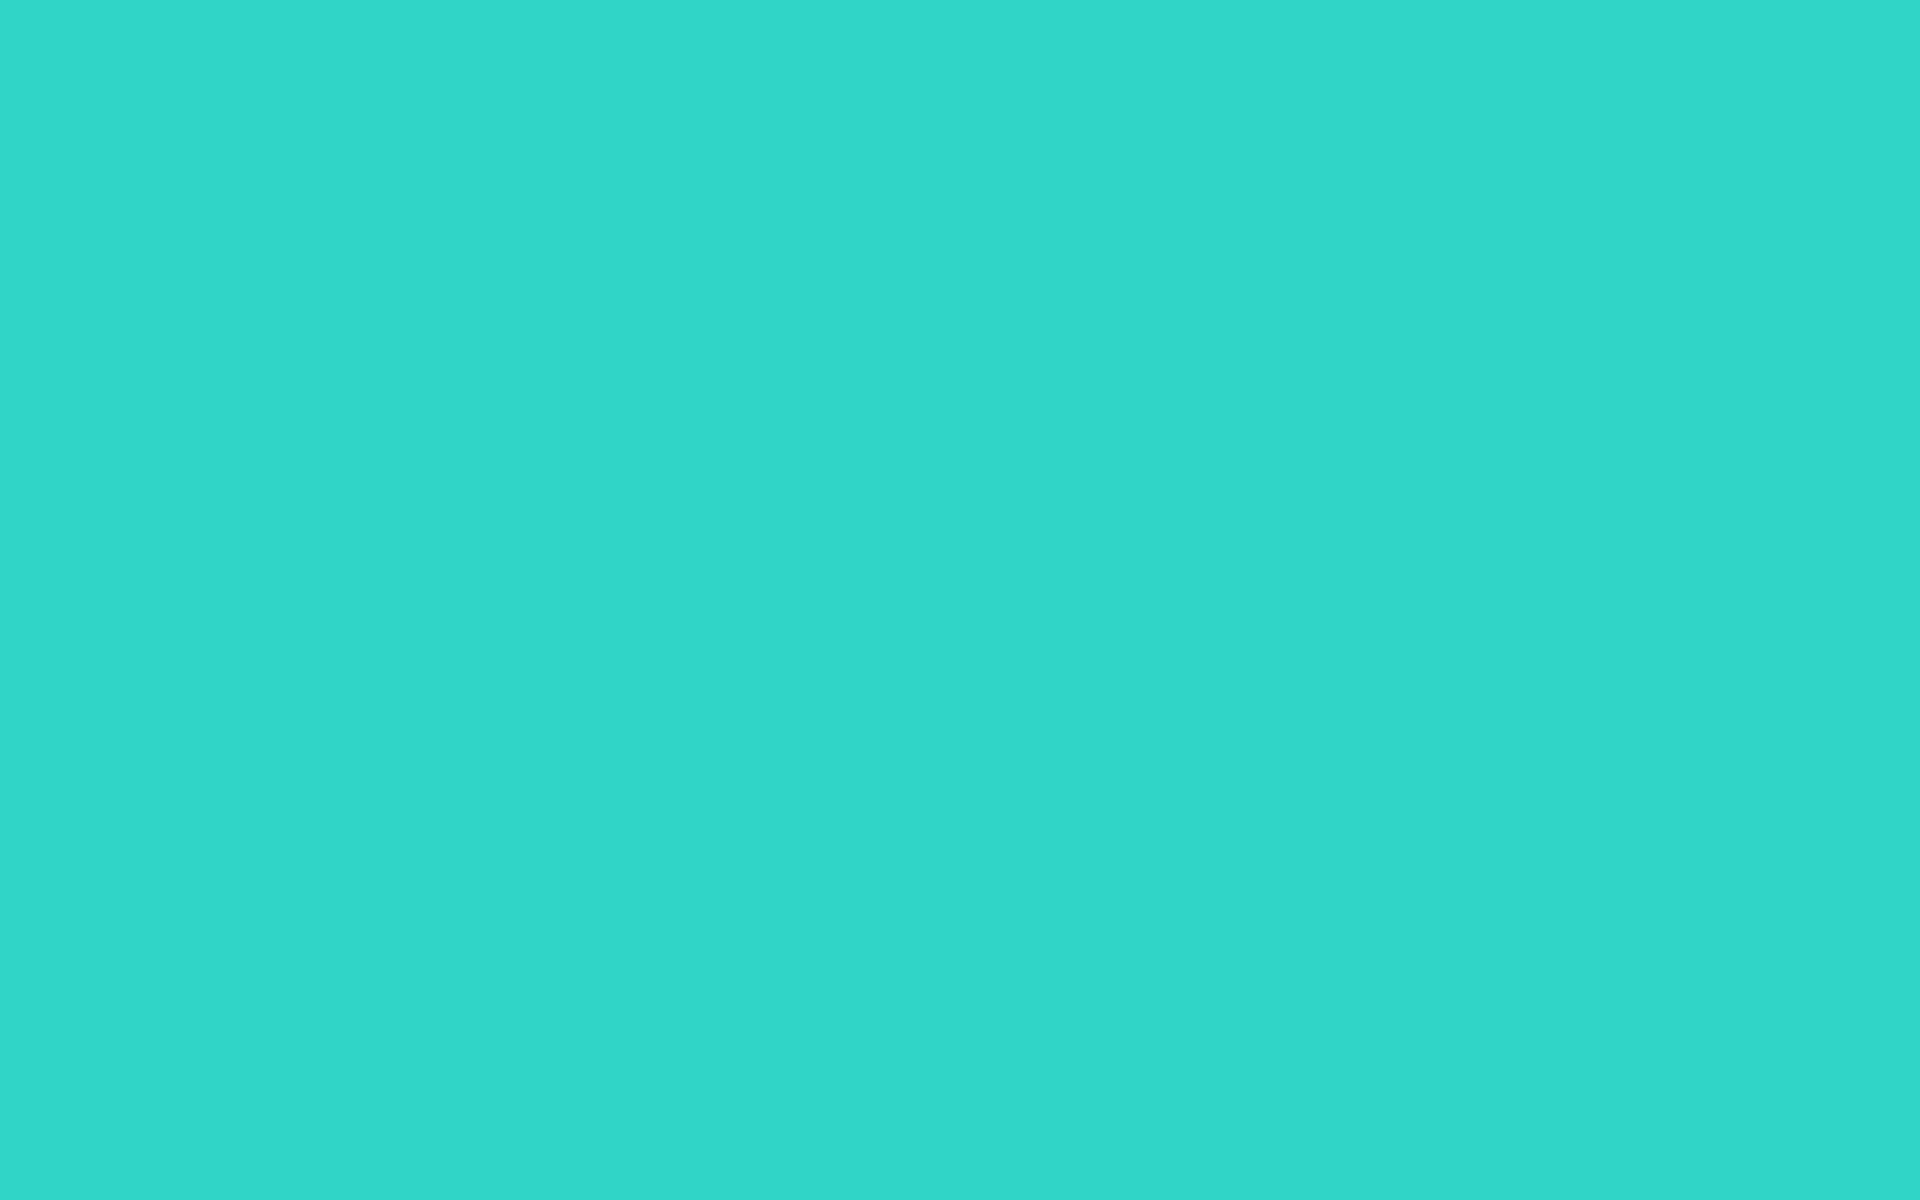 19 Free Resolution Turquoise Solid Color Background View And .